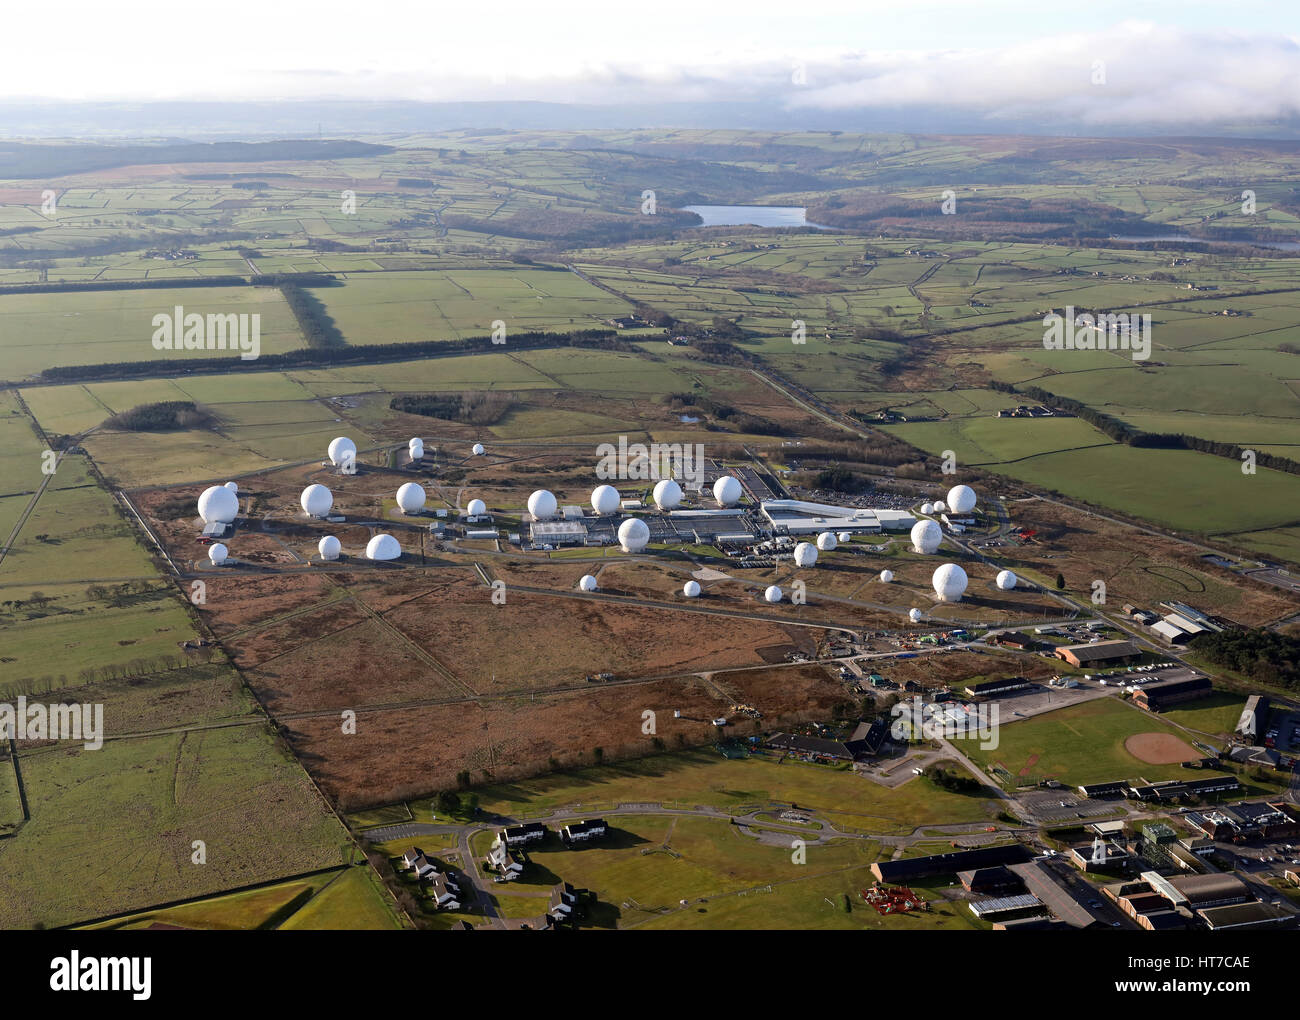 aerial view of the USAF base at Menwith Hill, UK - Stock Image